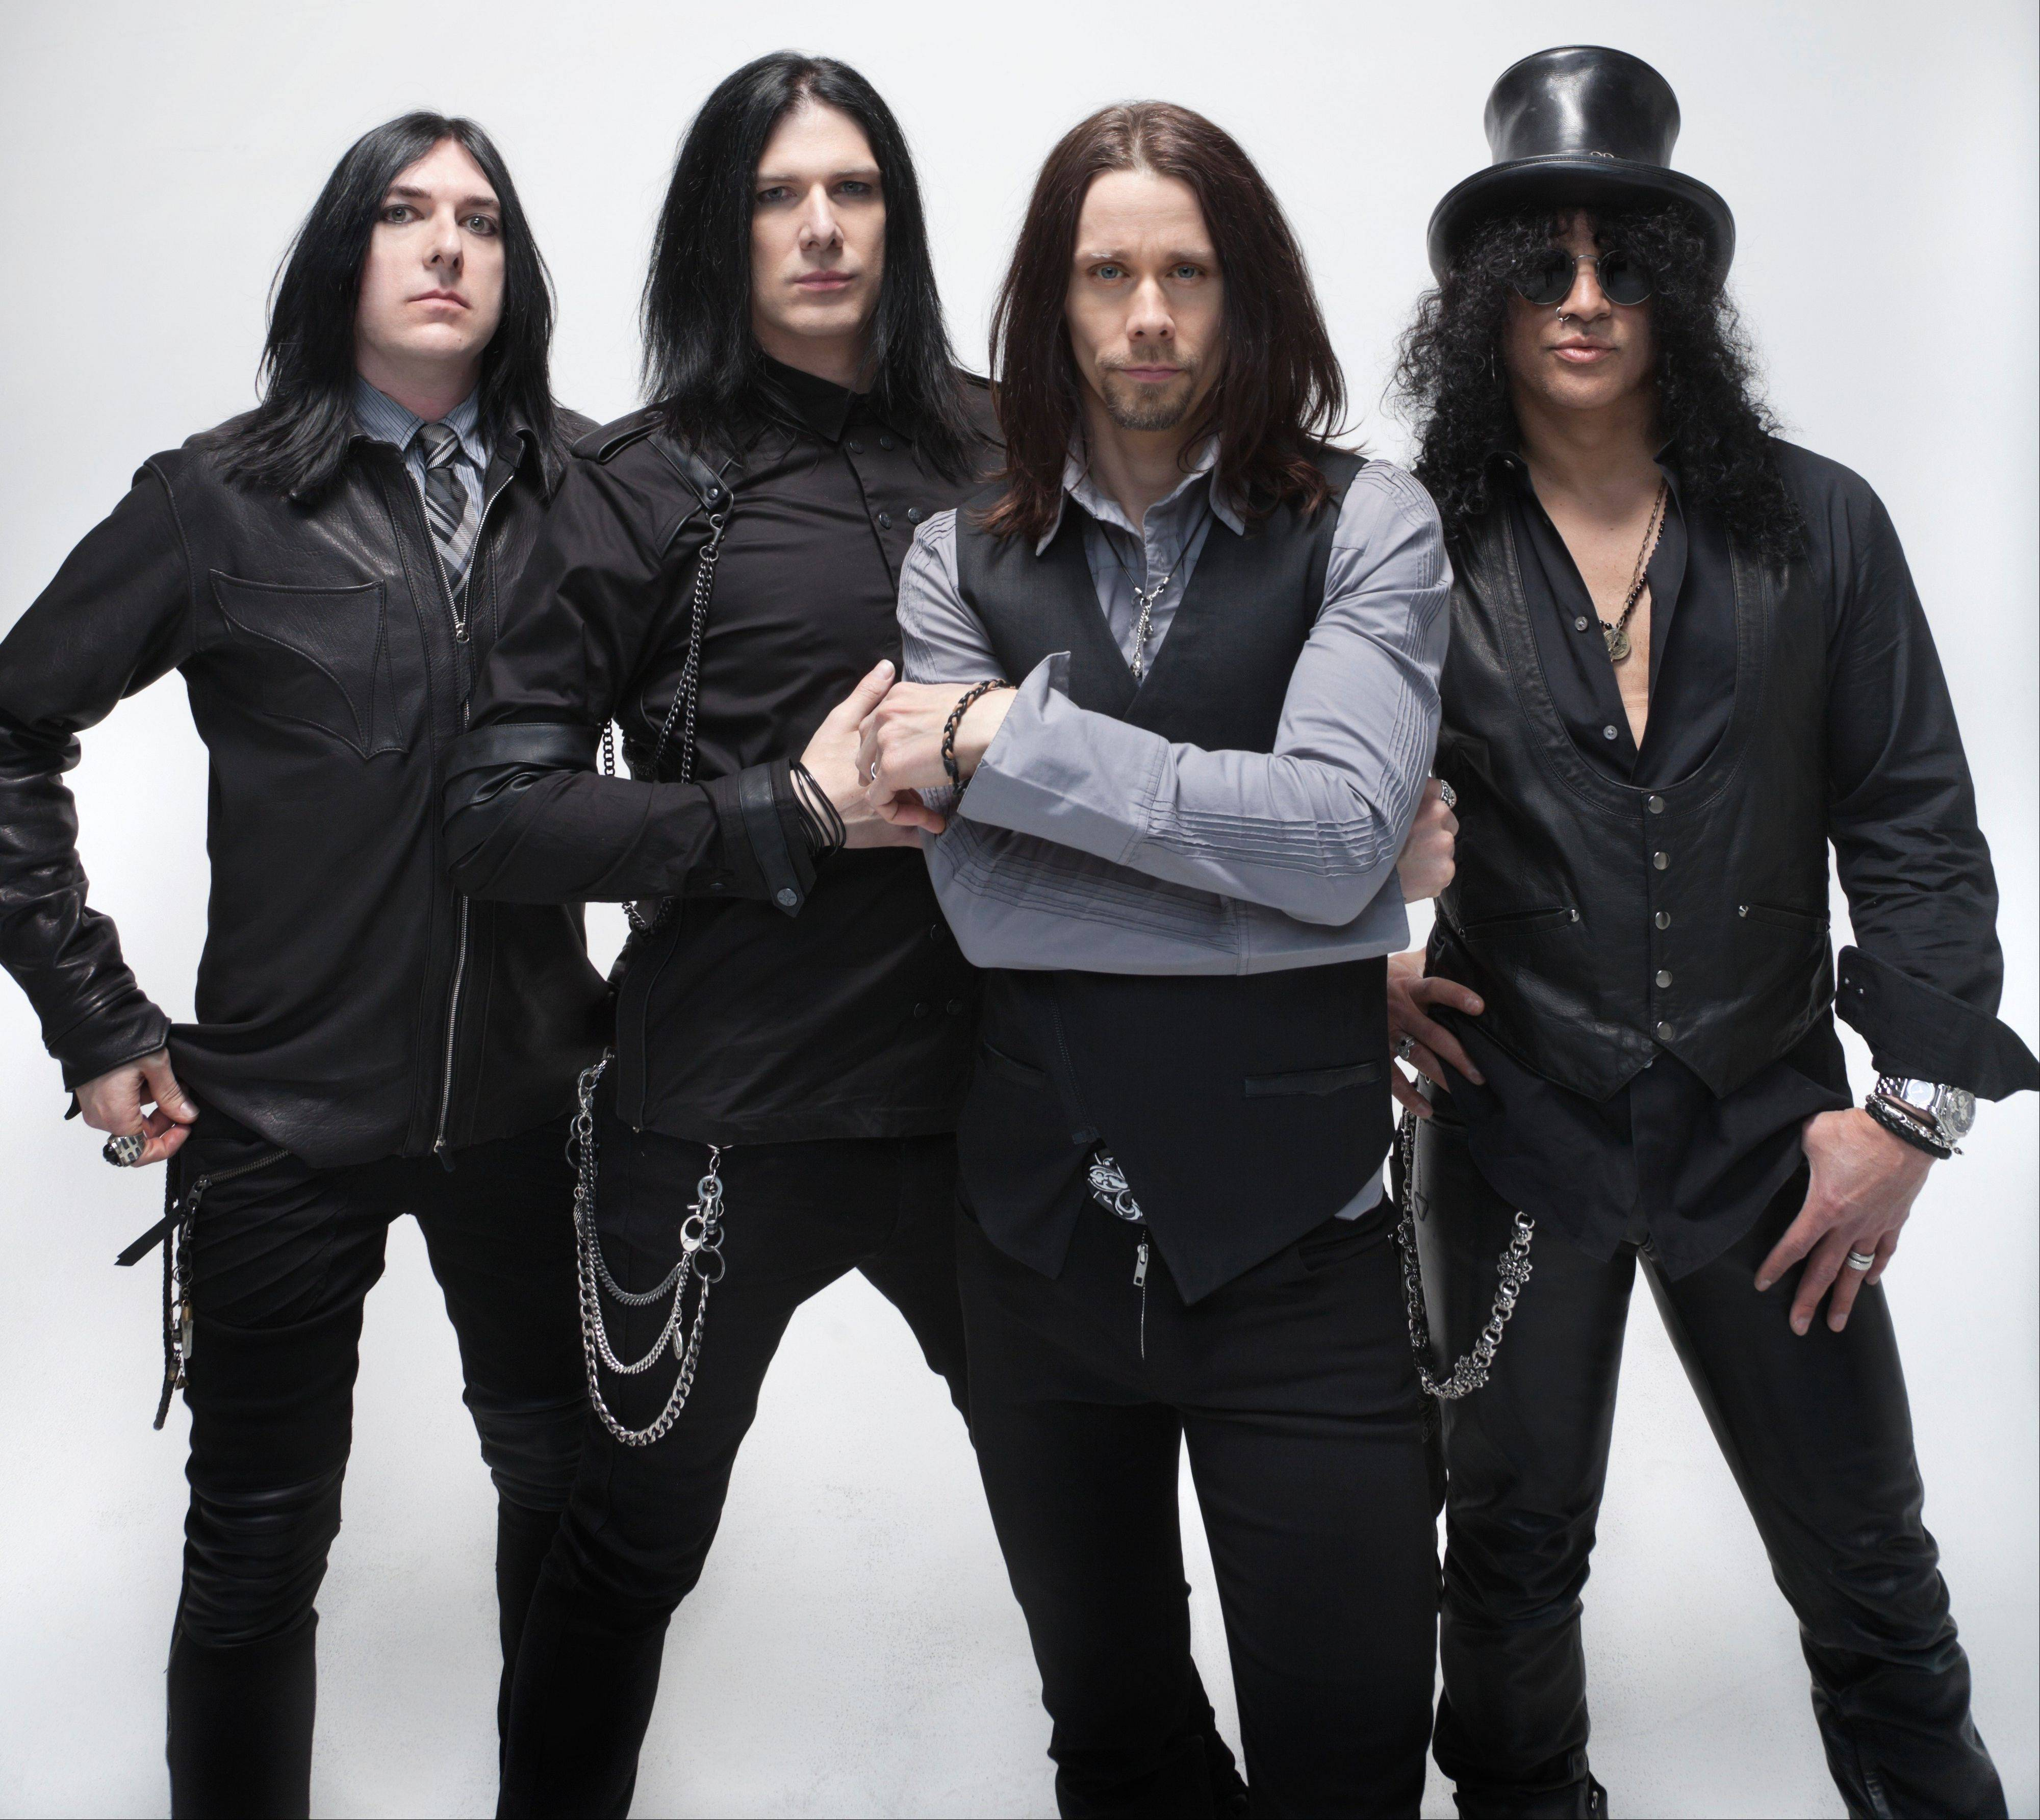 Slash, right, the iconic rock guitarist who used to play with Guns N' Roses, will play with his band Myles Kennedy & the Conspirators at Naperville's Ribfest on Friday.